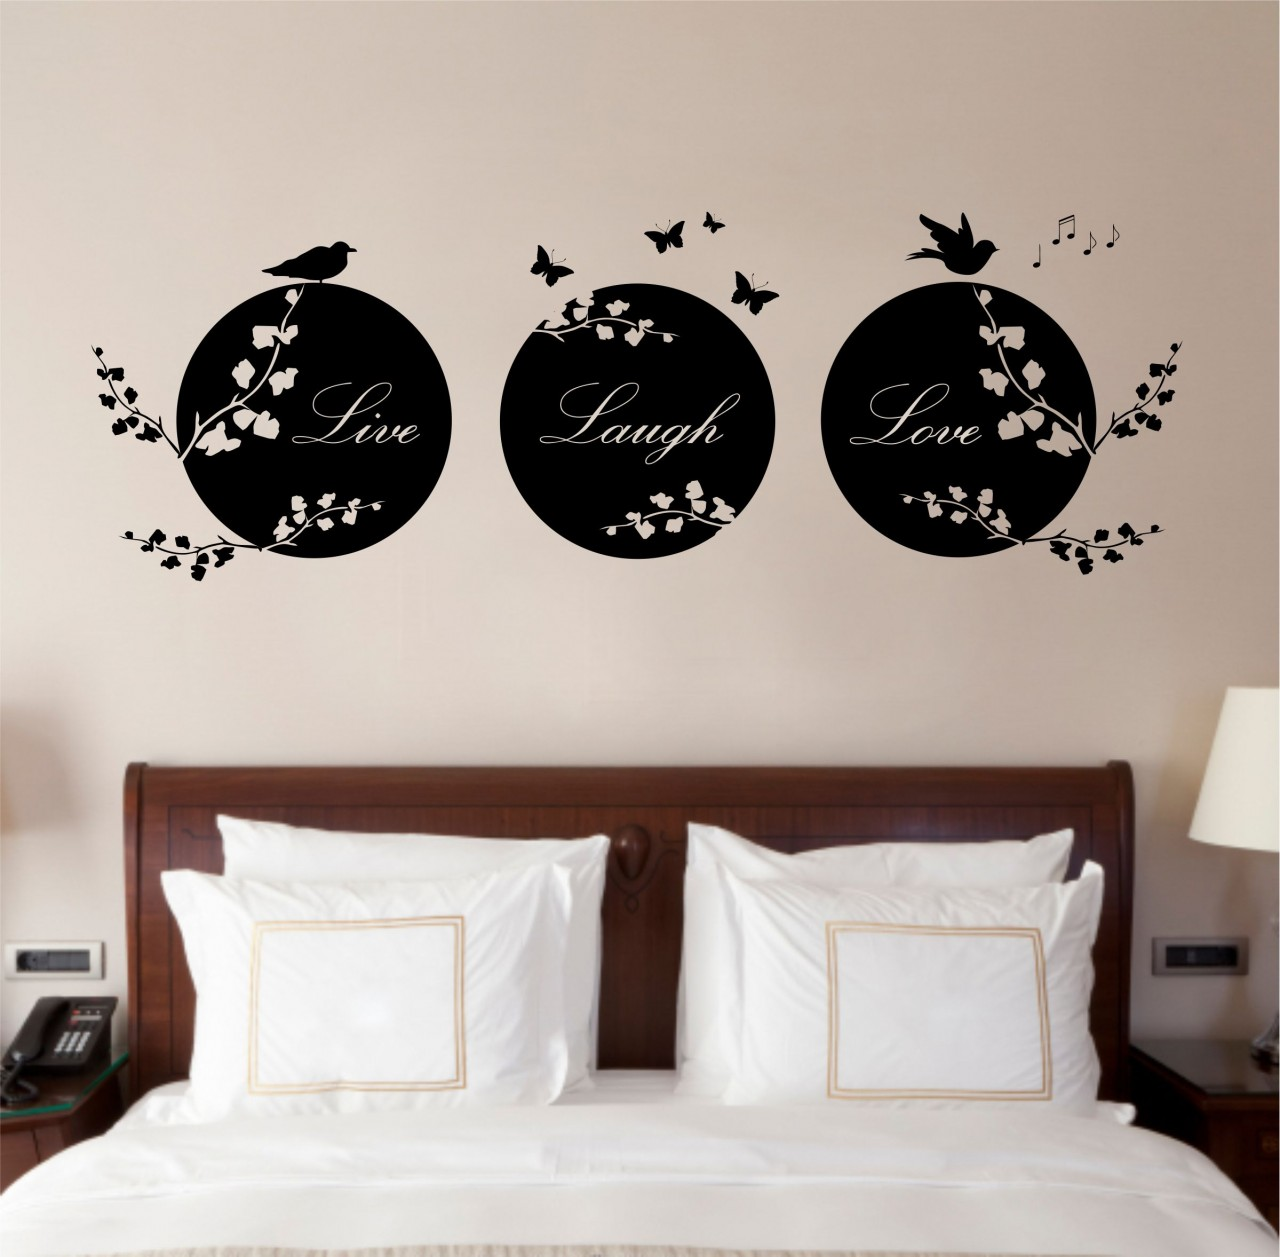 5 types of wall art stickers to beautify the room for Bedroom wall decor